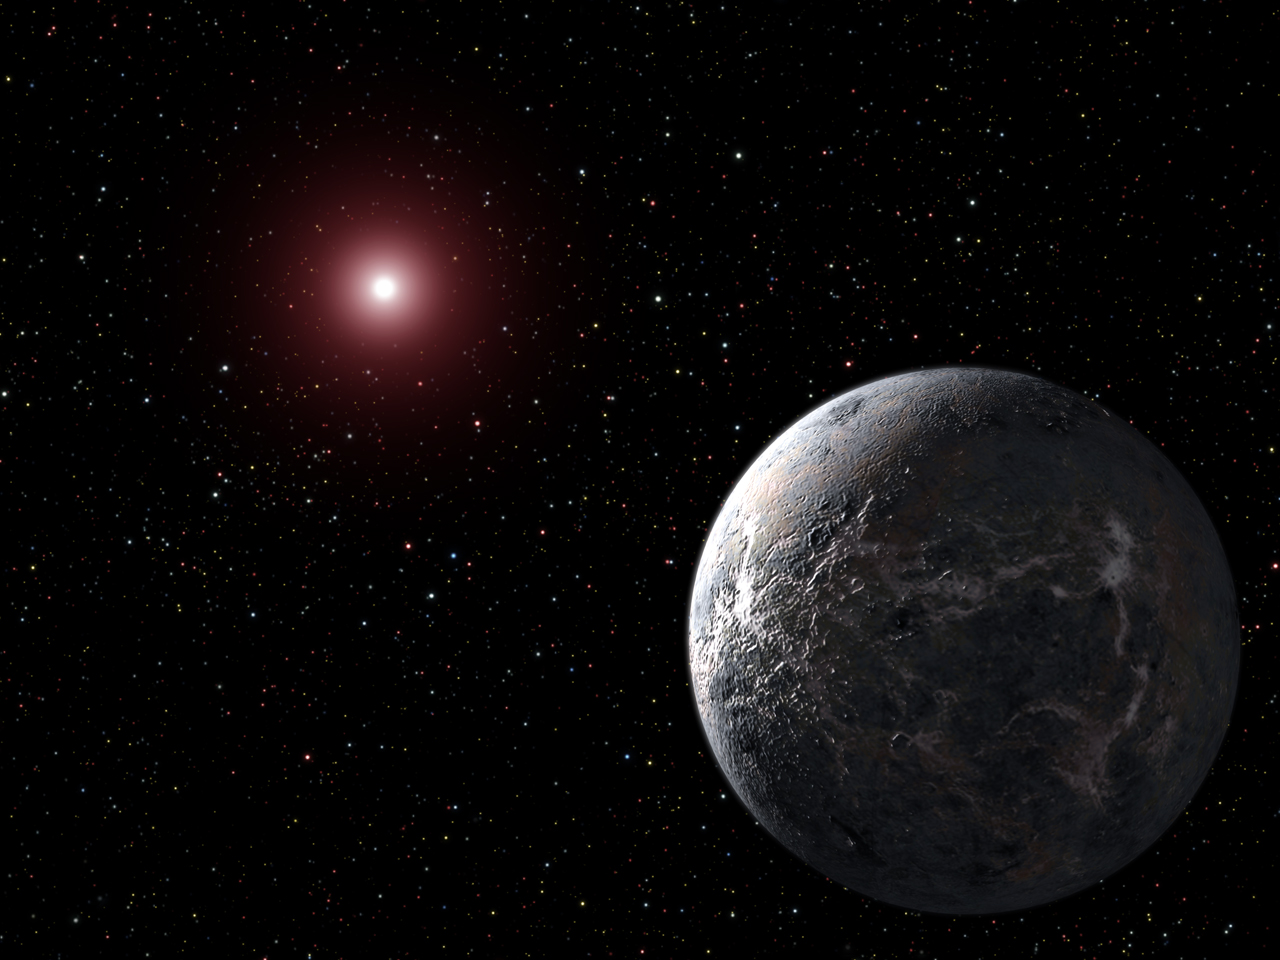 planet far from a star